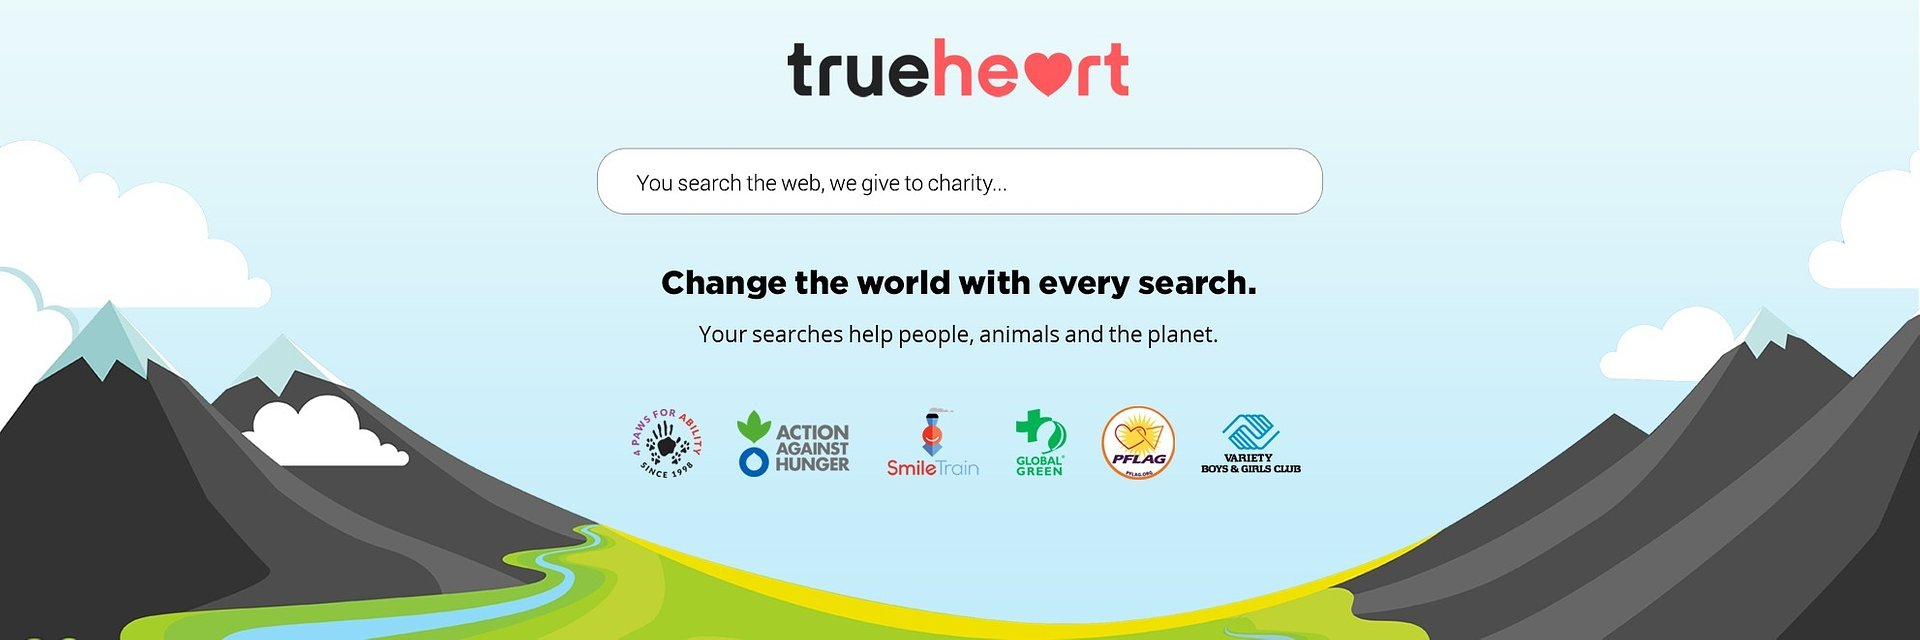 PROTECT THE PLANET WITH EVERY SEARCH AT TRUEHEART